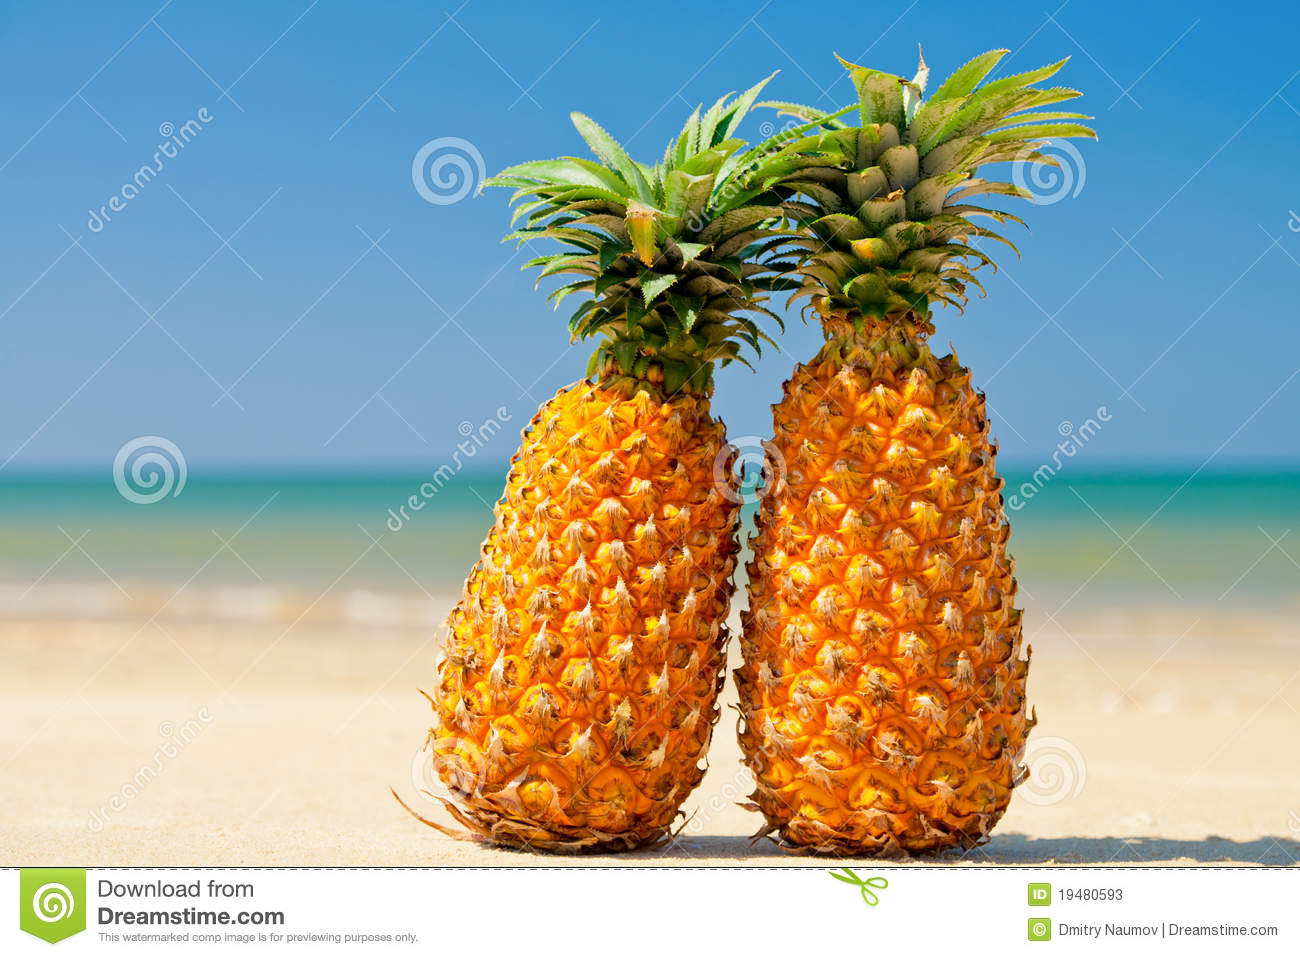 Pineapple At The Beach: Pineapples On The Beach Stock Image. Image Of Sand